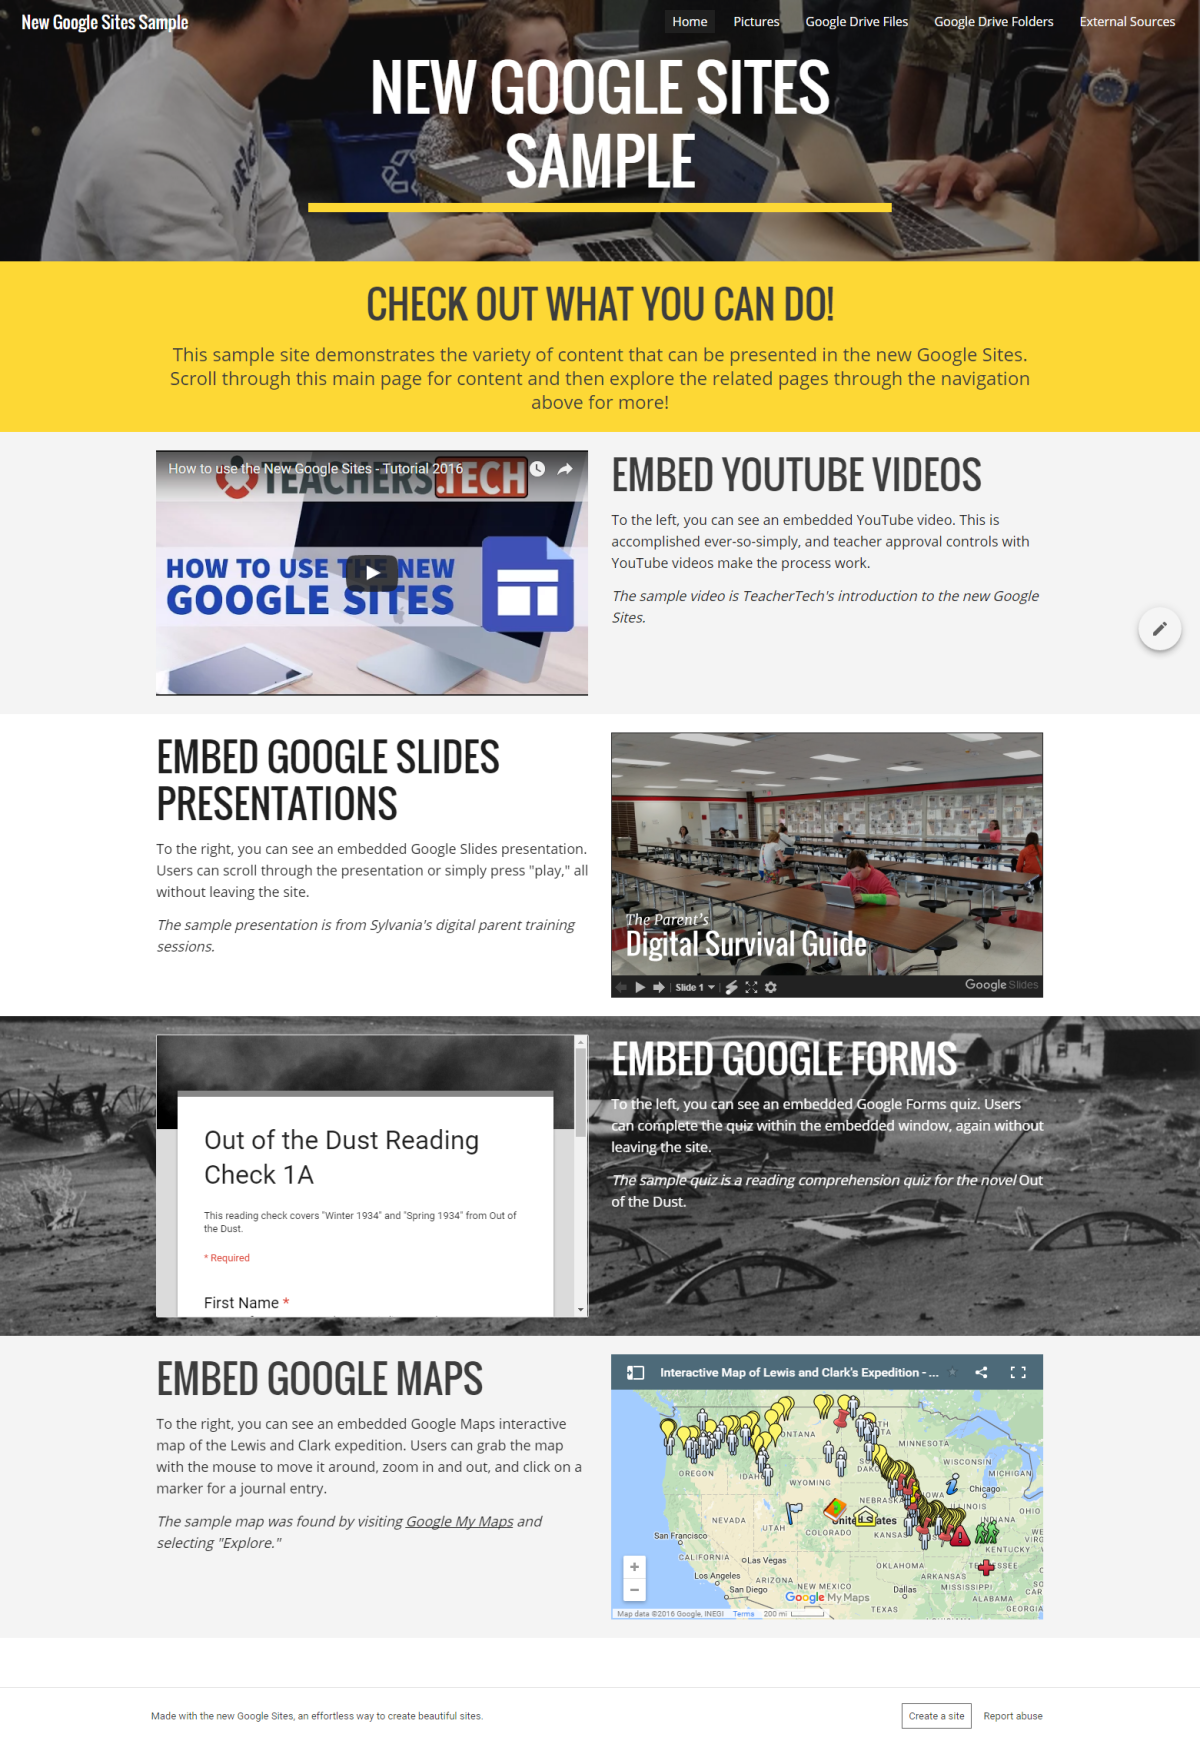 Resource Introduction: The New Google Sites